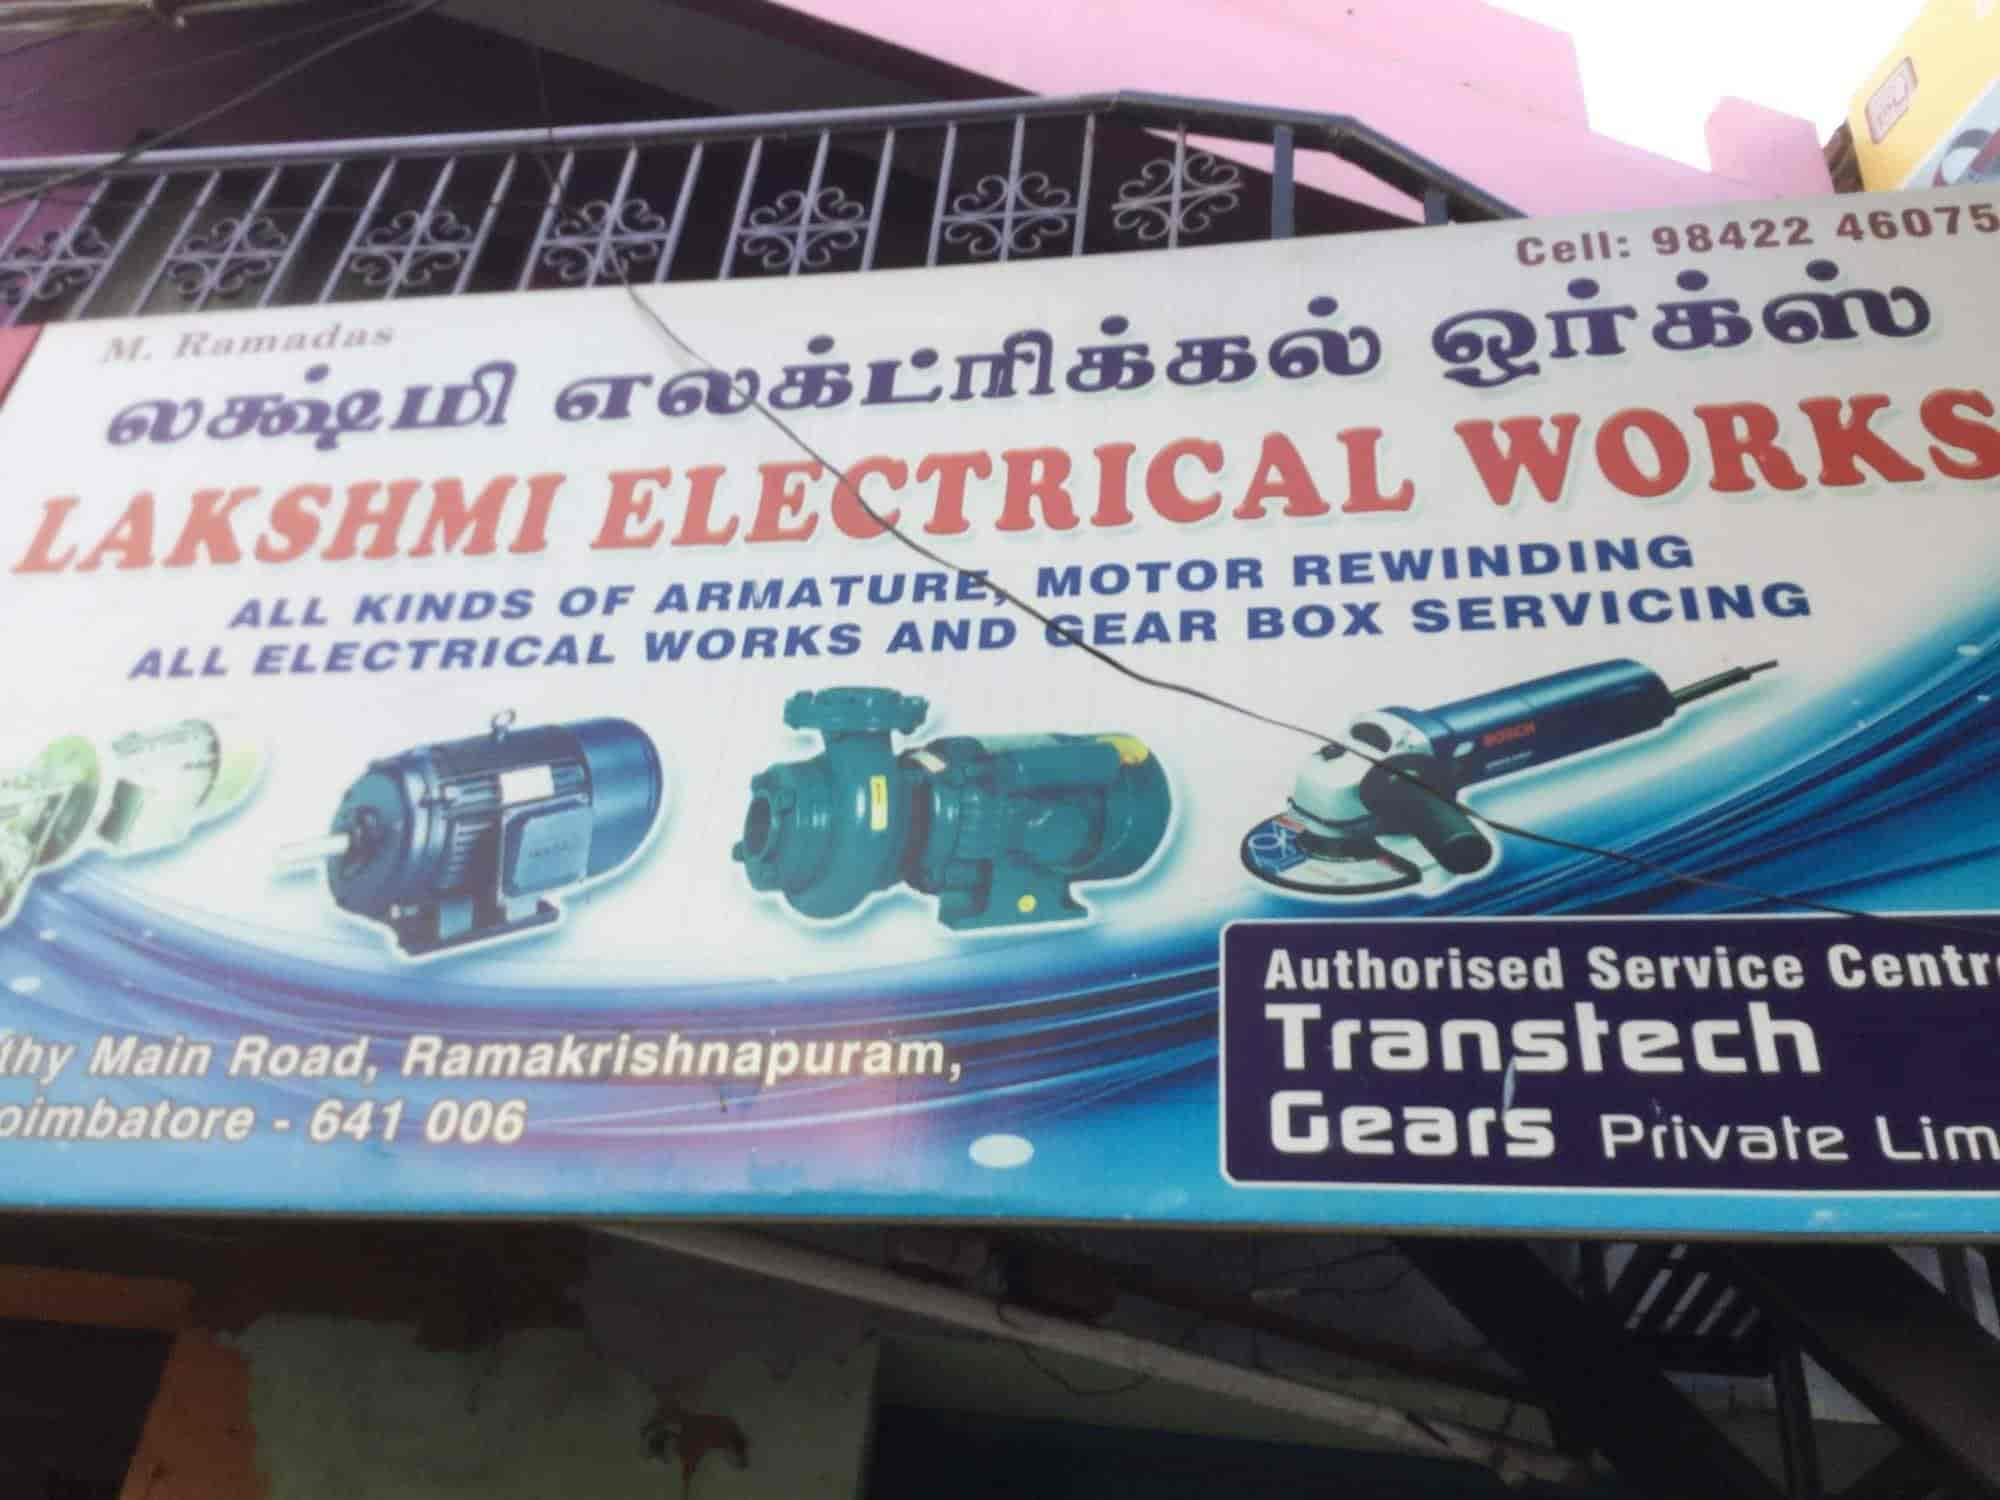 Lakshmi Electrical Works, Ganapathy - Electric Motor Rewinding ...